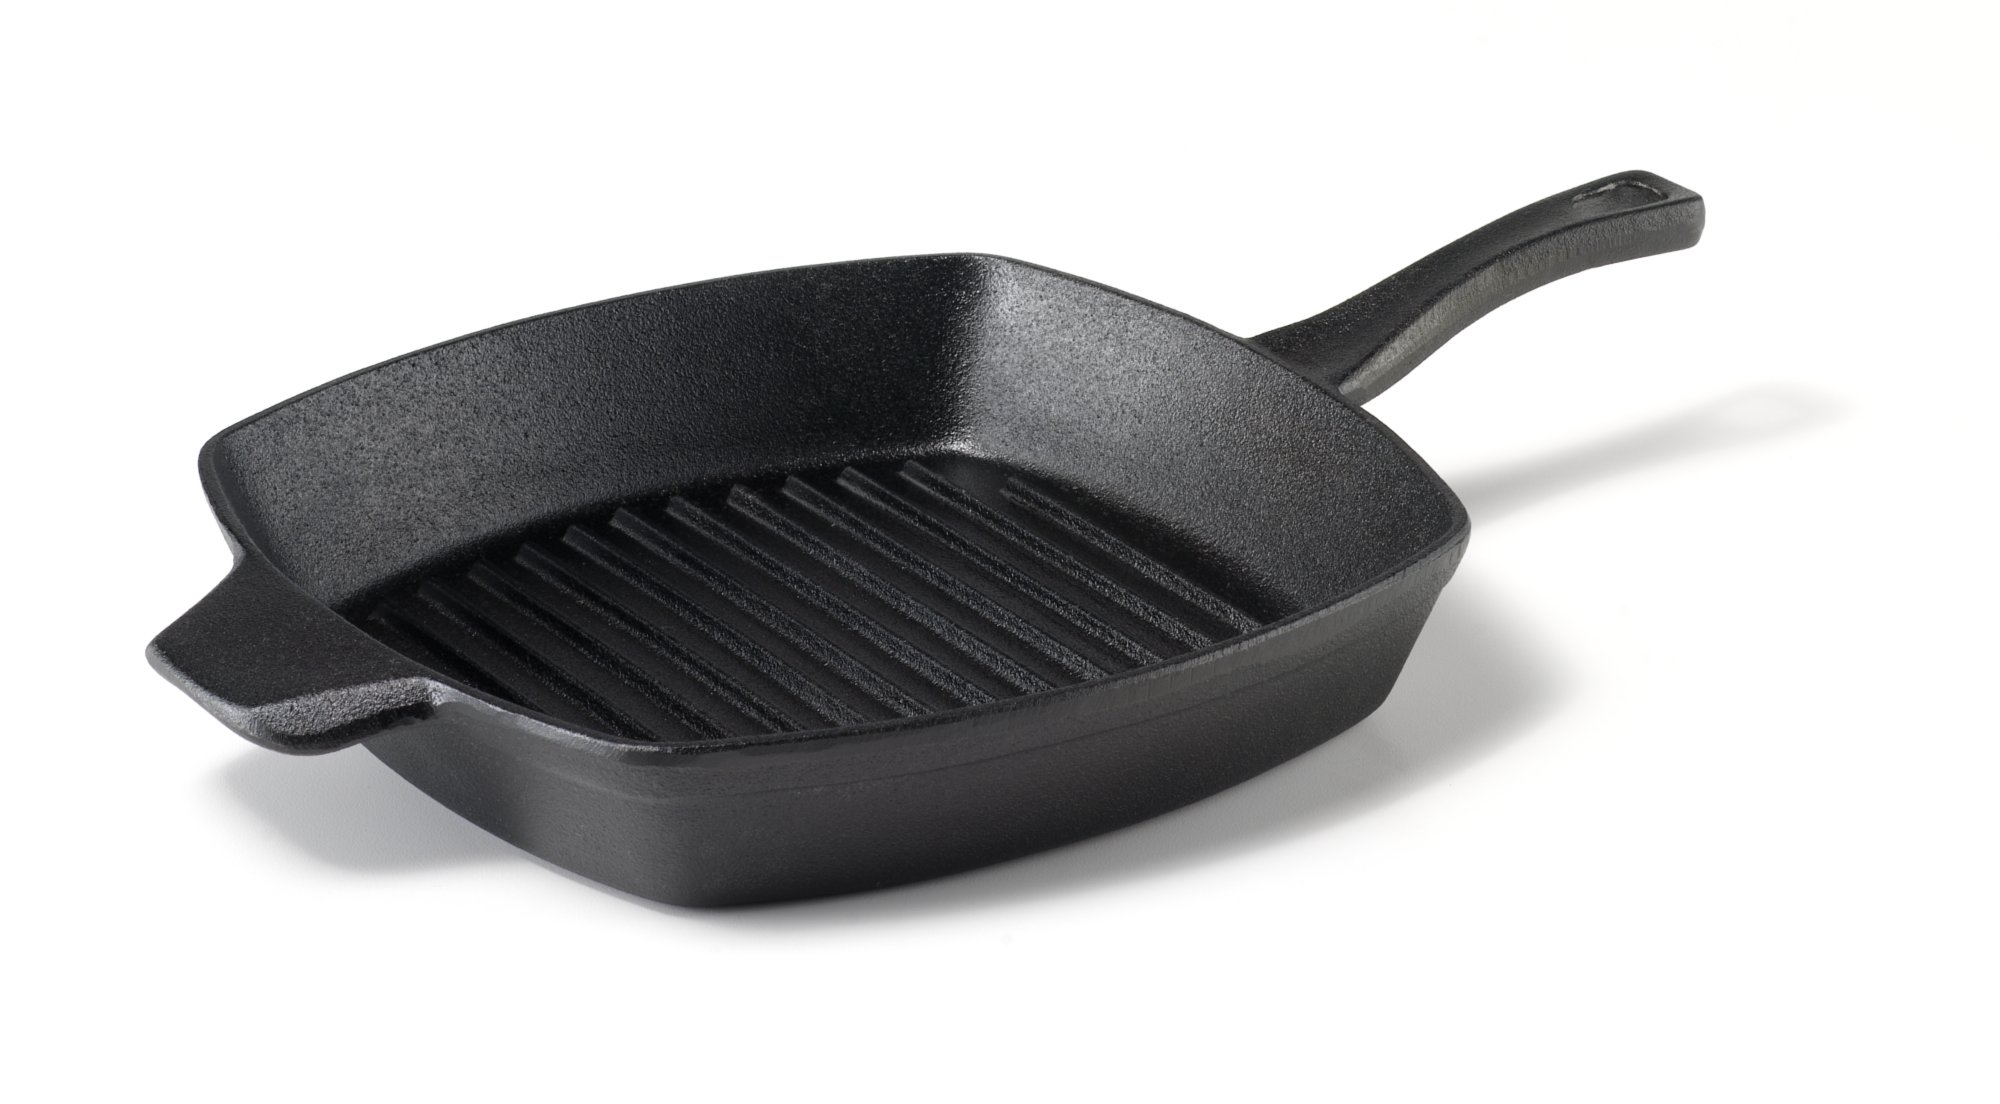 Calphalon Pre-Seasoned Cast Iron 10-in. Grill Pan